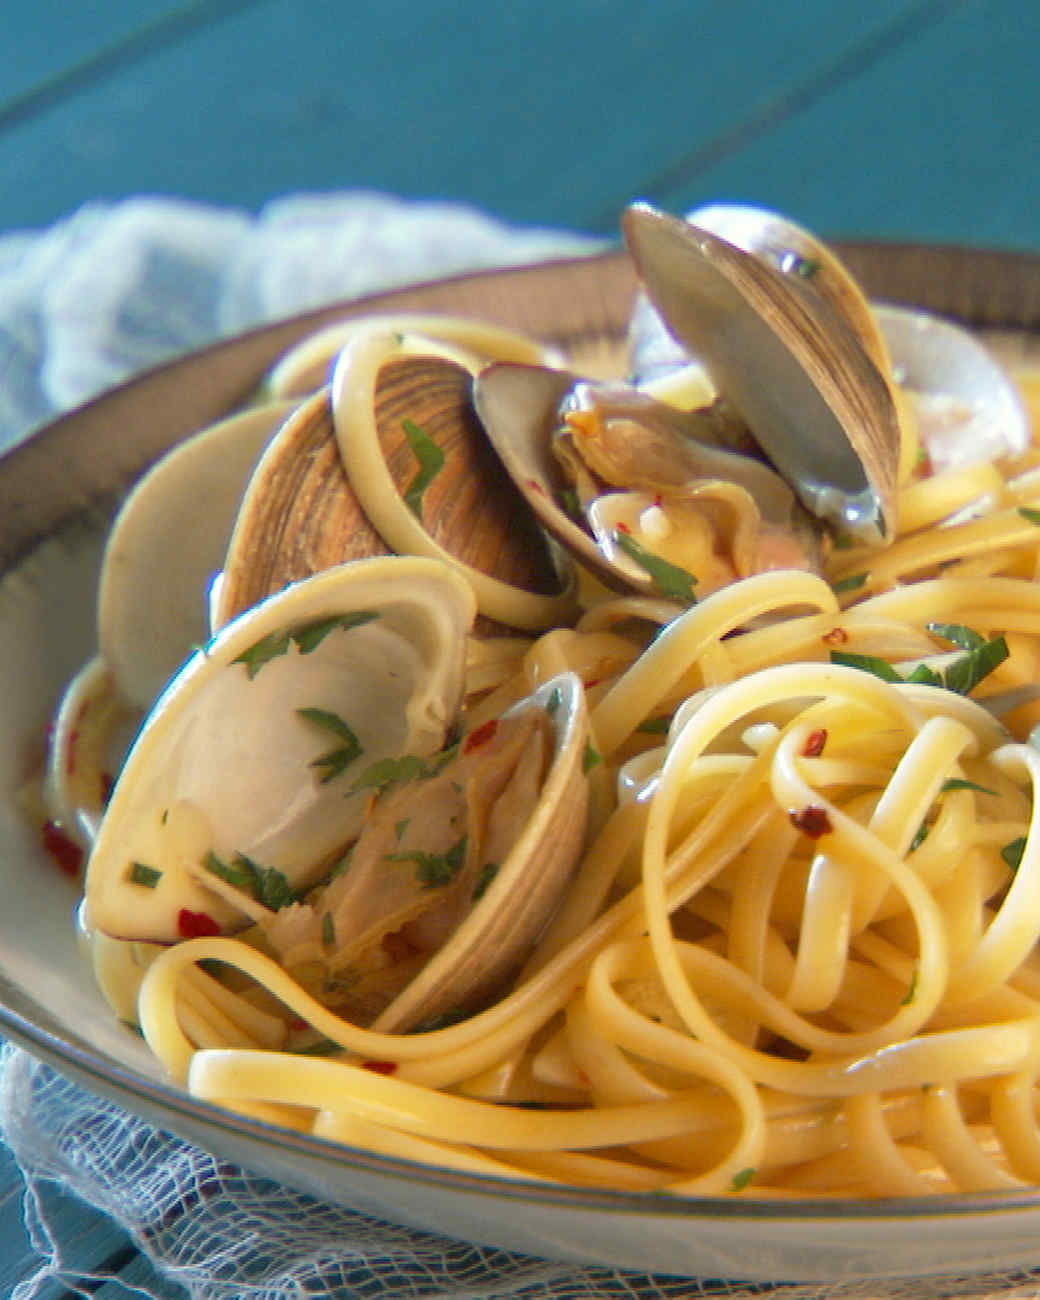 mh_1019_linguine_and_clams.jpg